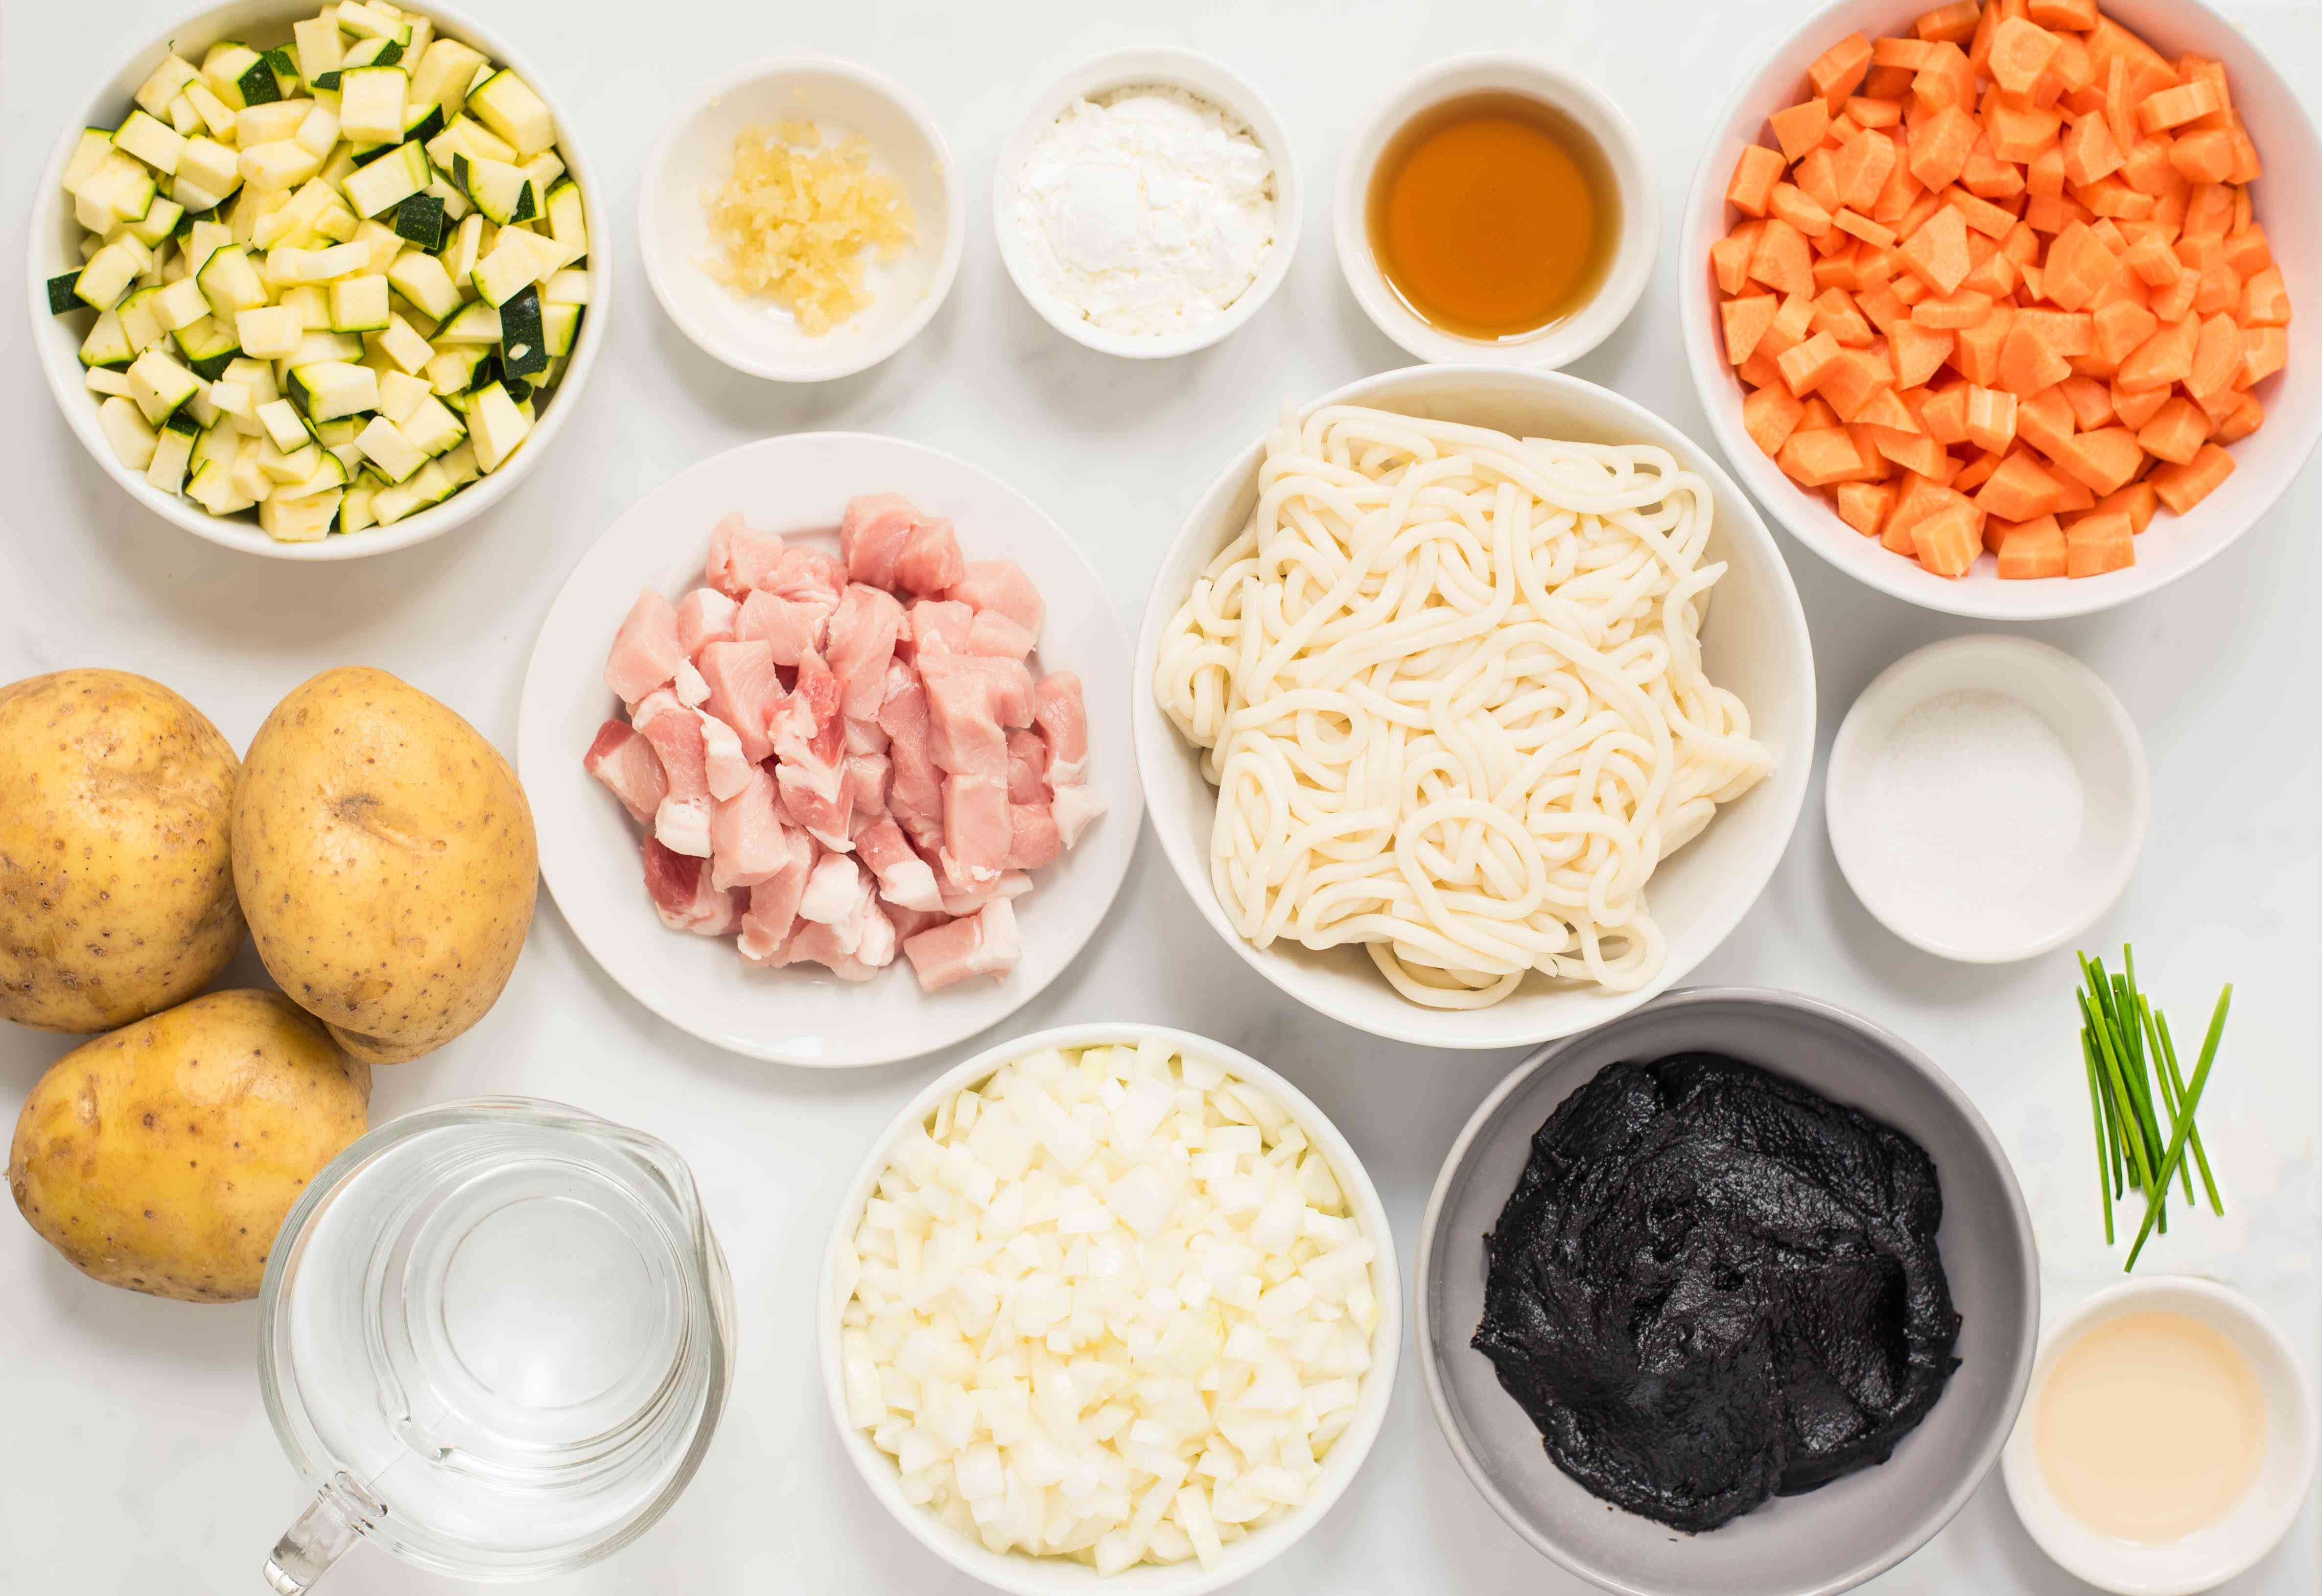 Ingredients for Korean noodles with black bean sauce